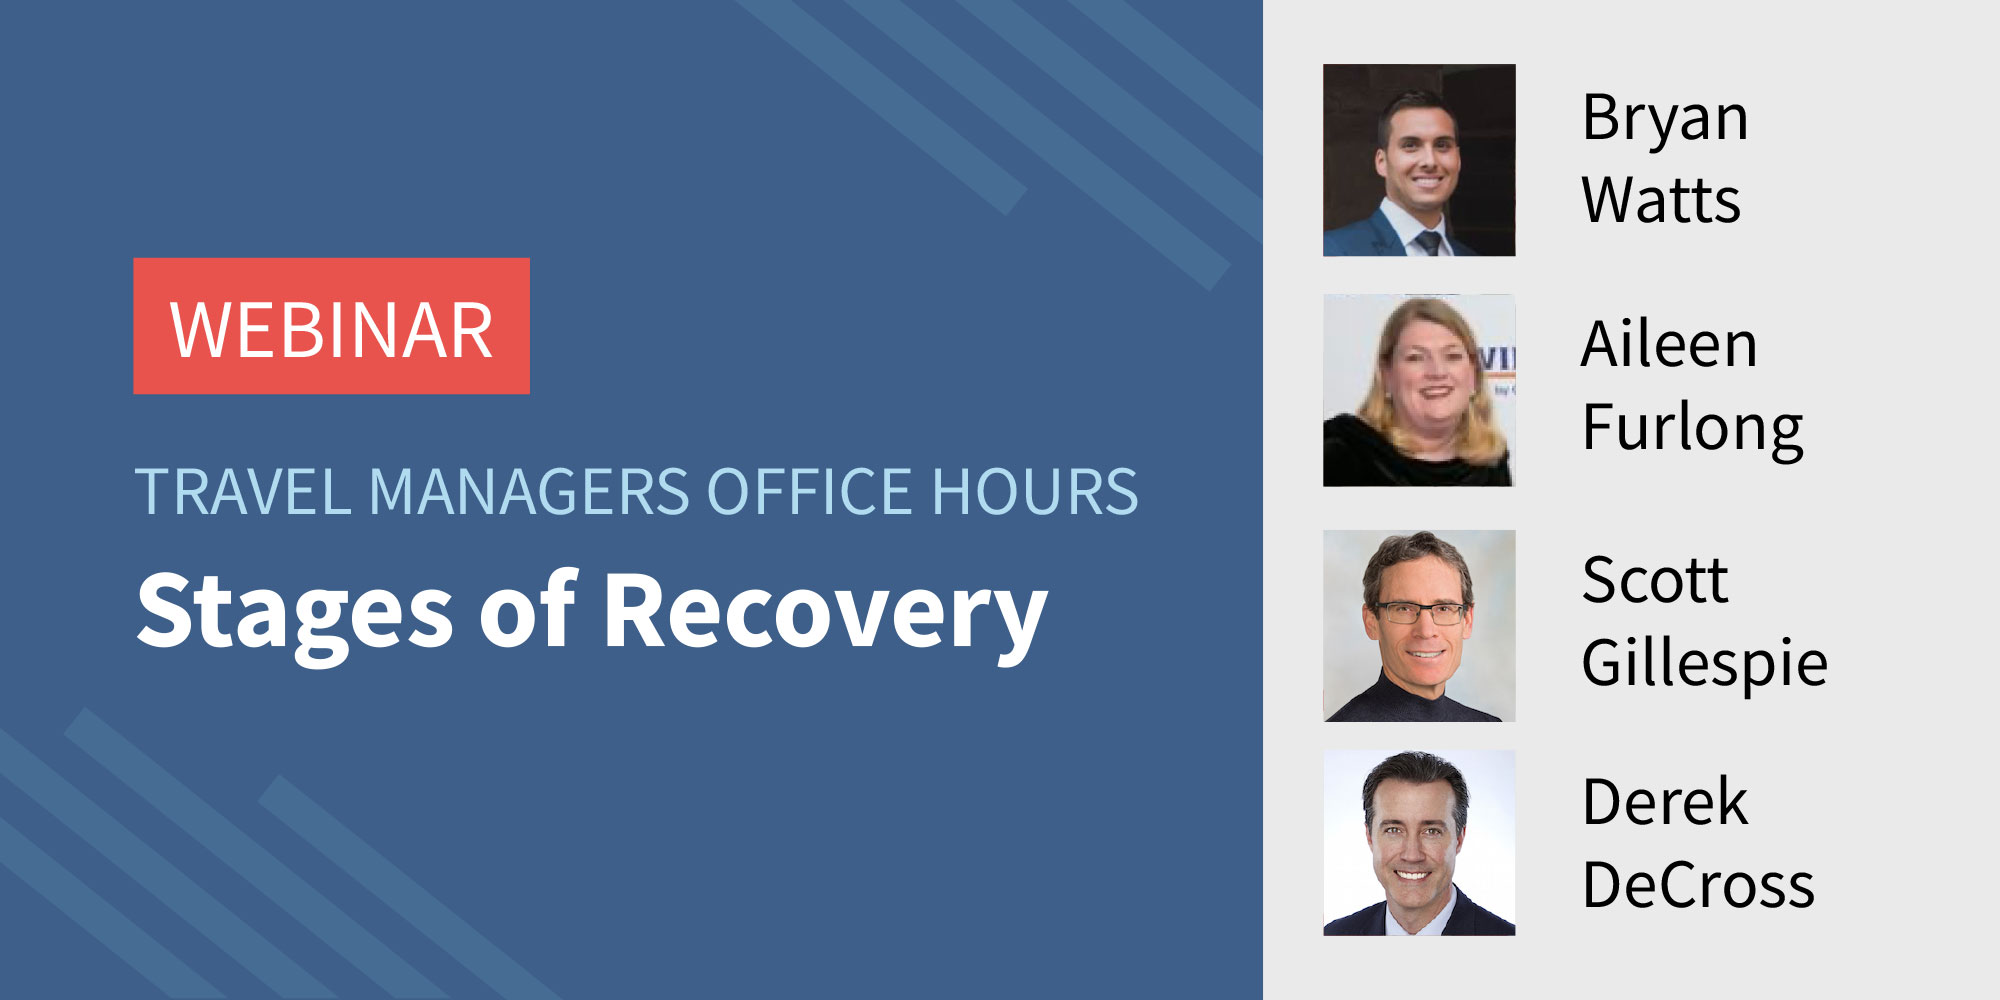 Traxo Travel Managers Office Hours Webinar Stages of Recovery Featured Image